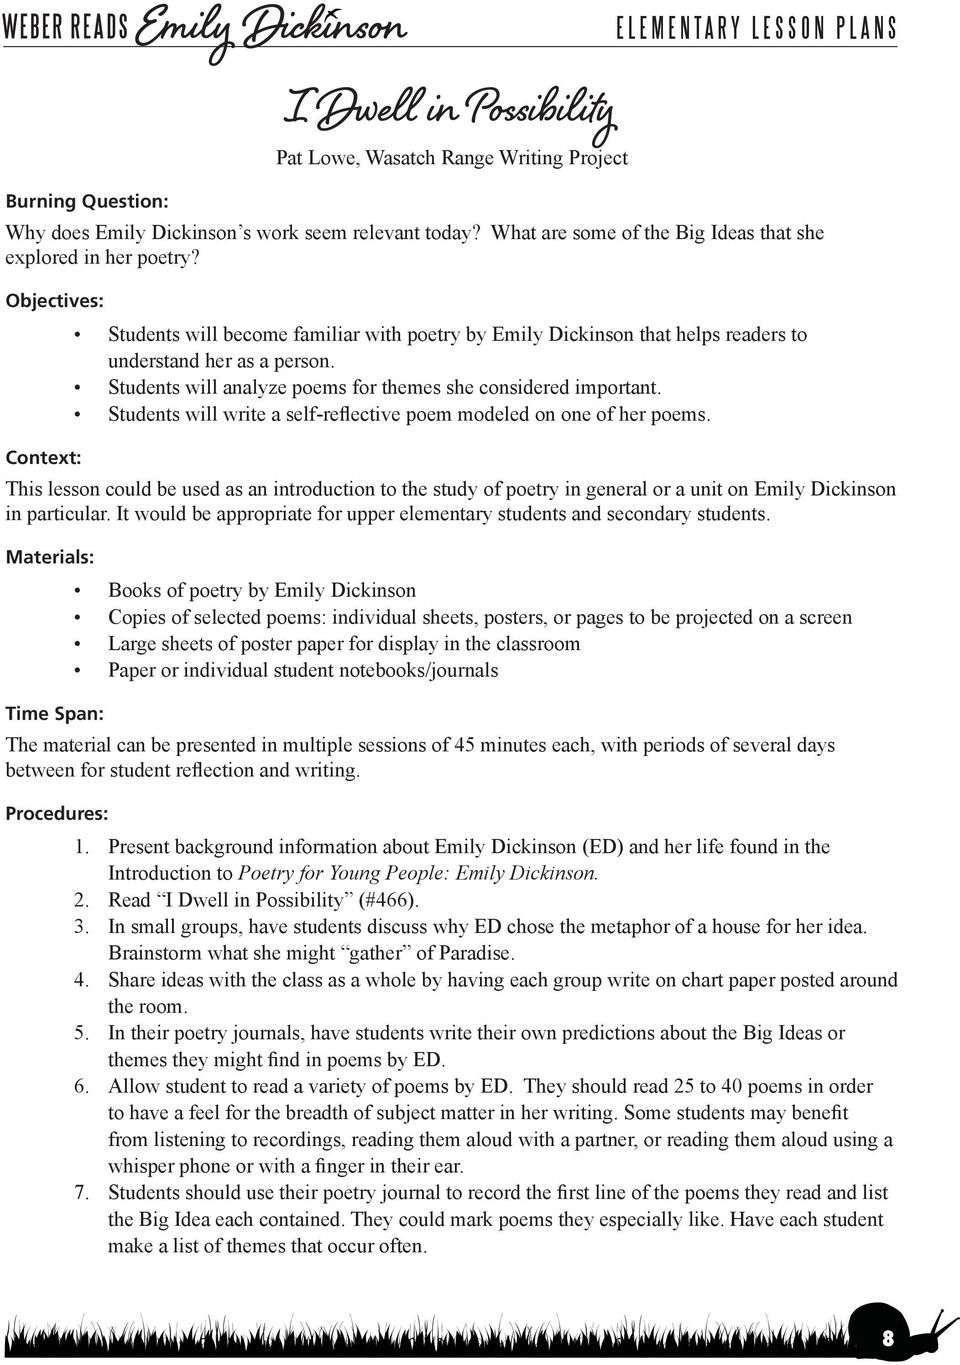 Mba admission essay services questions